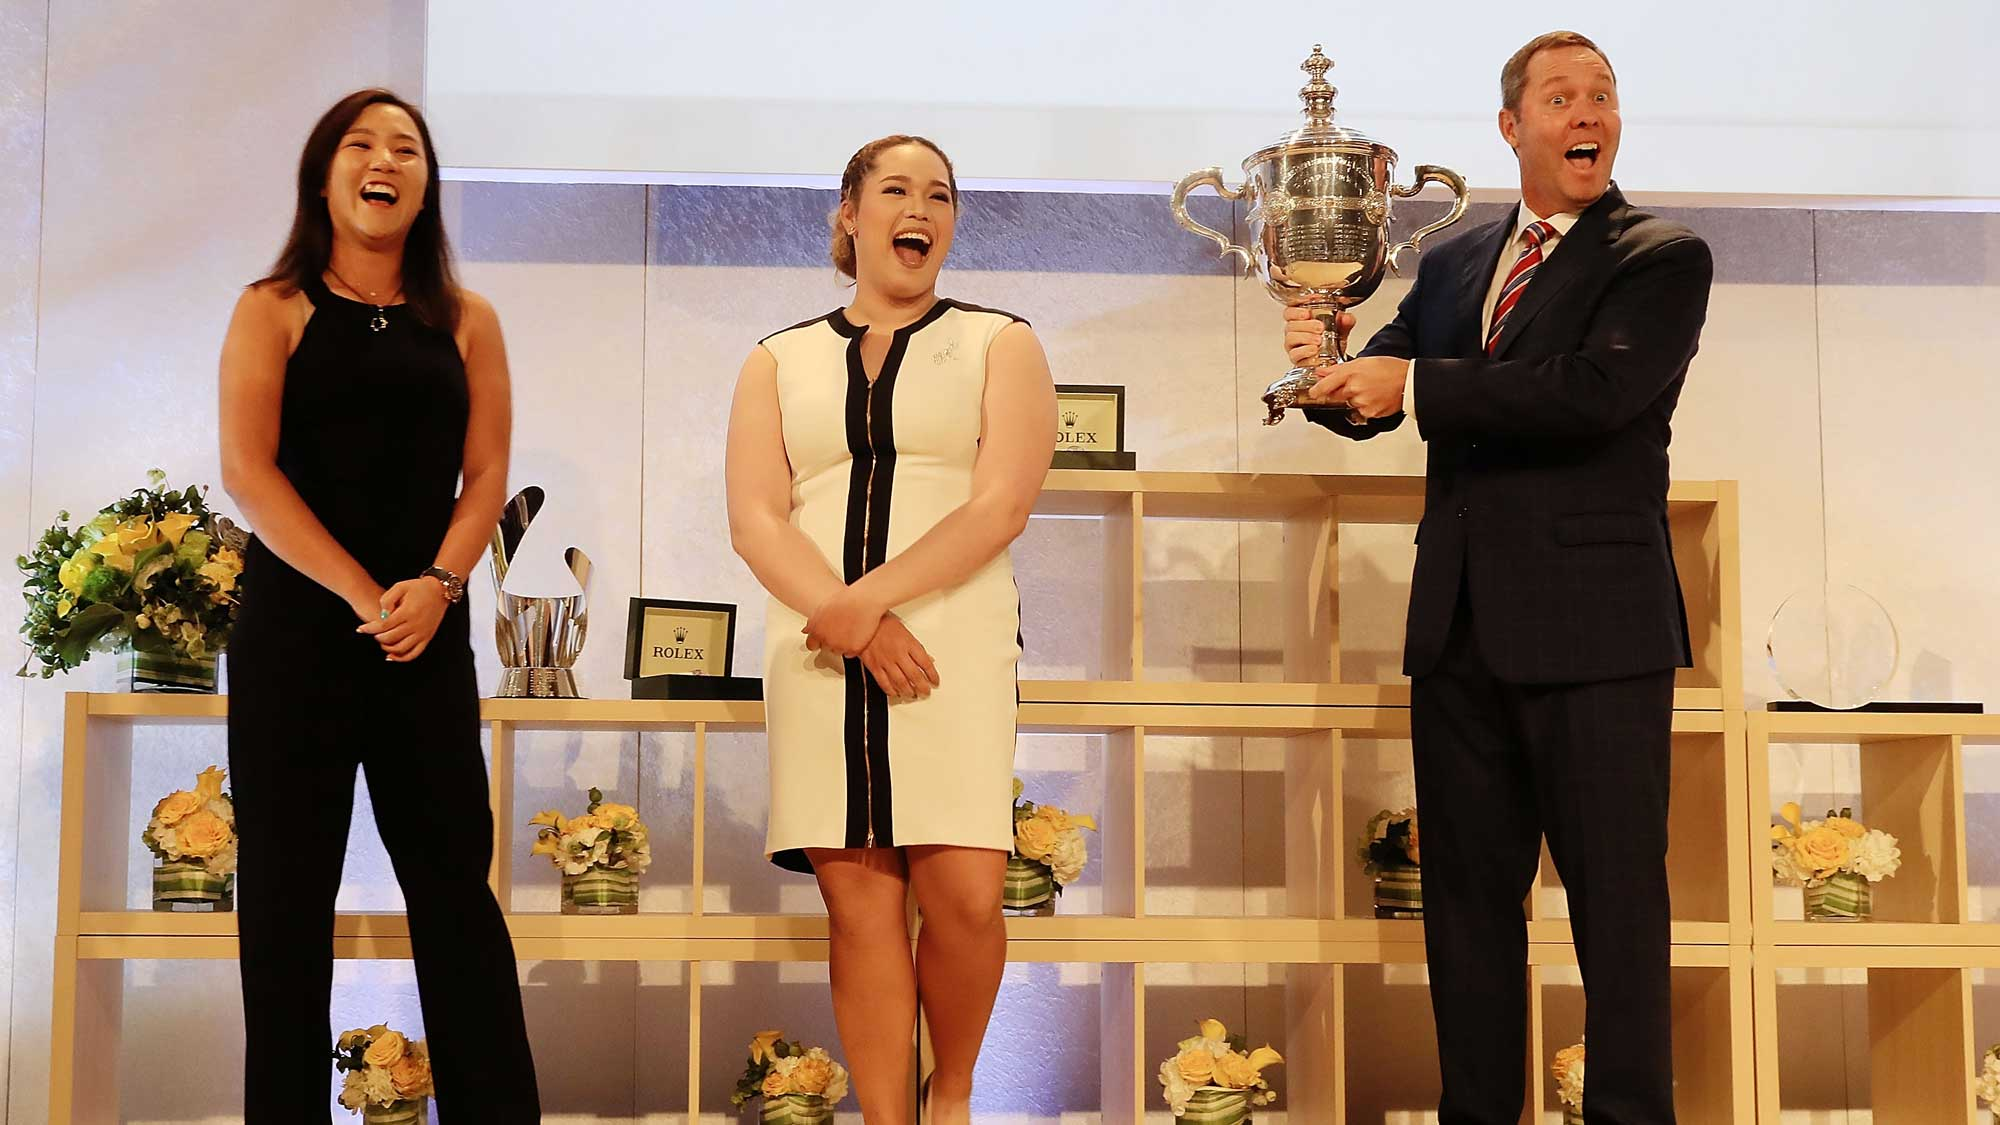 LPGA players Lydia Ko of New Zealand and Ariya Juntanugarn of Thailand along with LPGA commissioner Michael Whan pose with the Player of the Year Award which has yet to be determined at the LPGA Rolex Players Awards